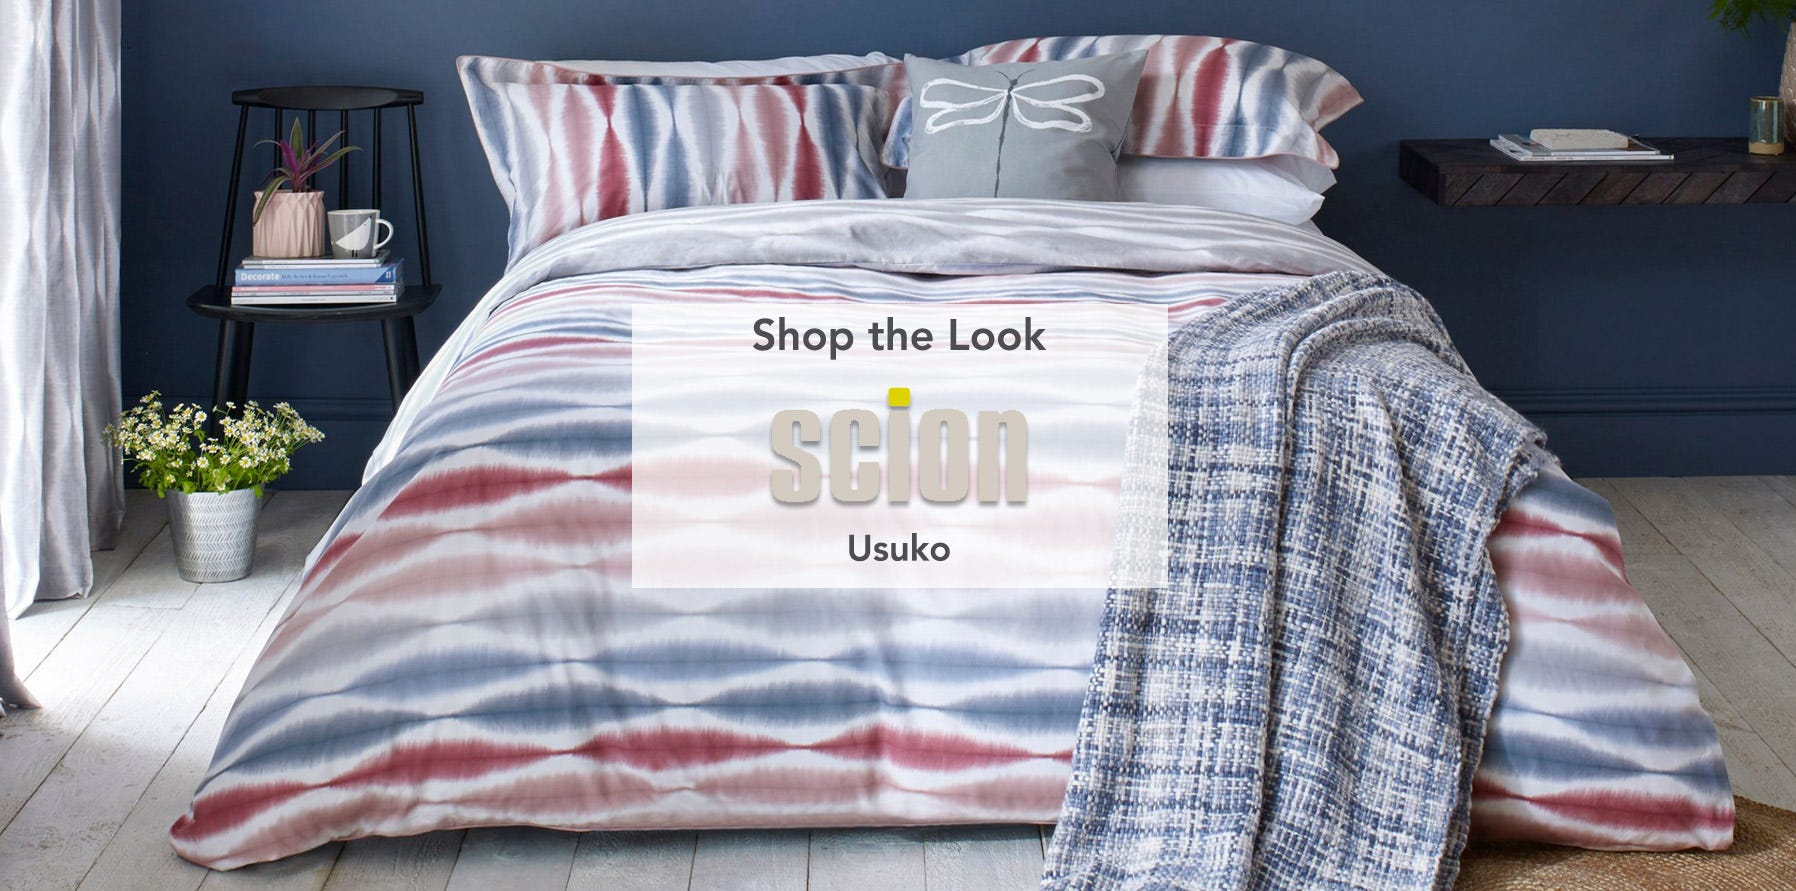 Scion Usuko Bedding Shop the Look